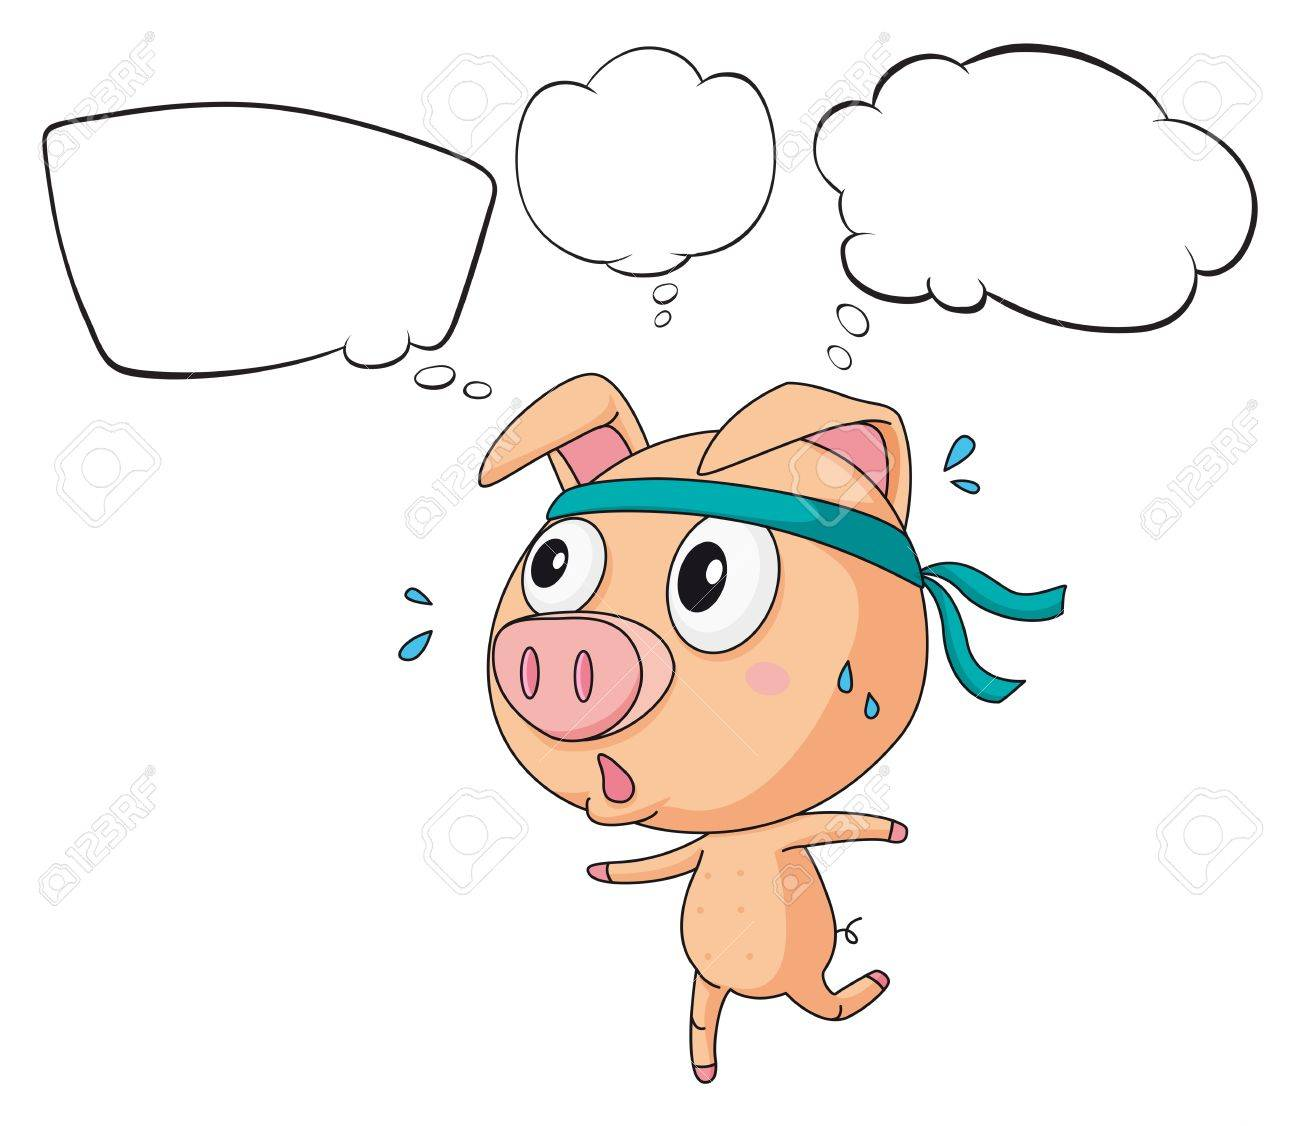 Illustration of a pig exercising with empty callouts on a white background Stock Vector - 18052816